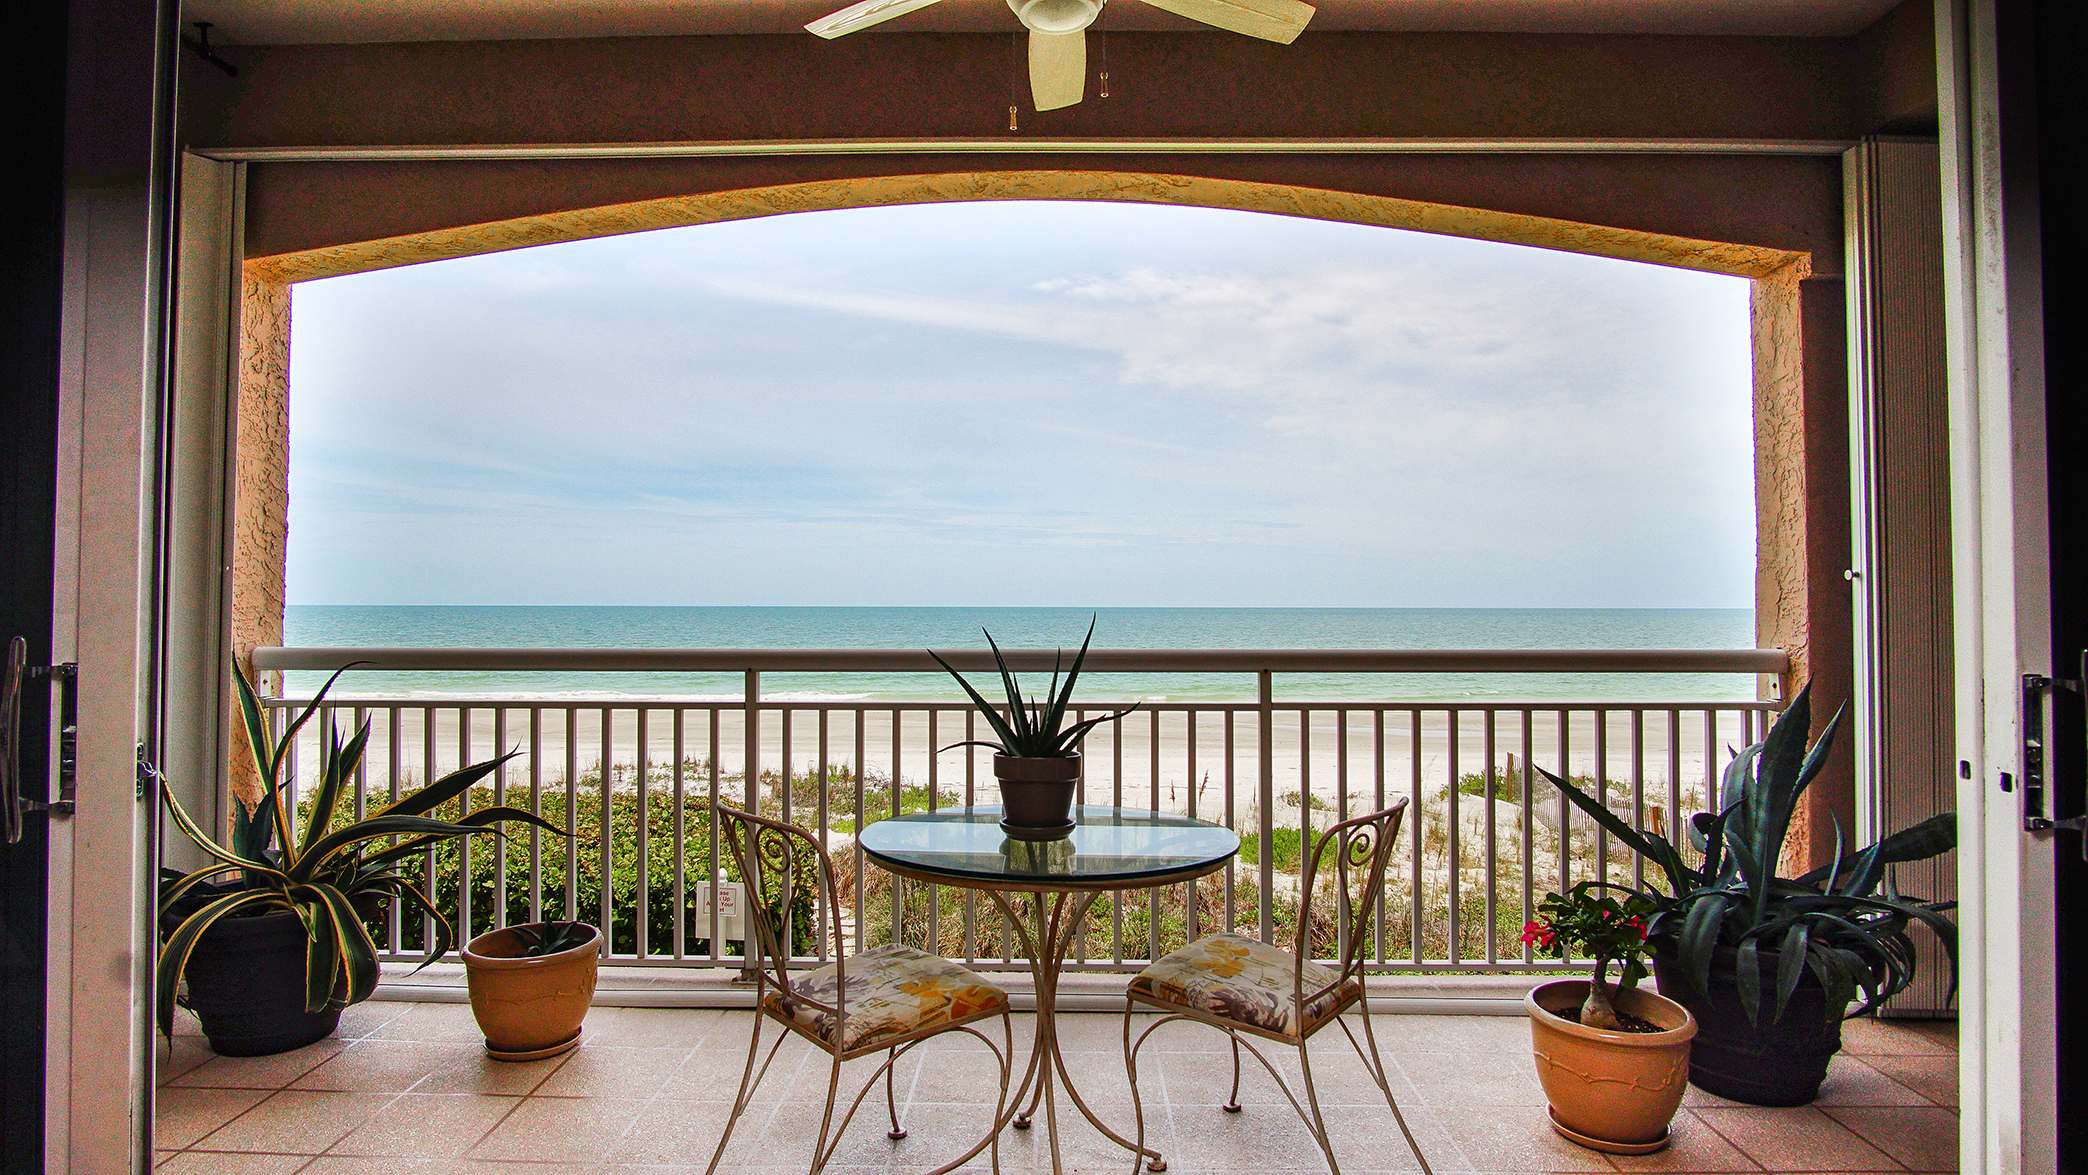 Private balcony off master suite overlooking the ocean and beach